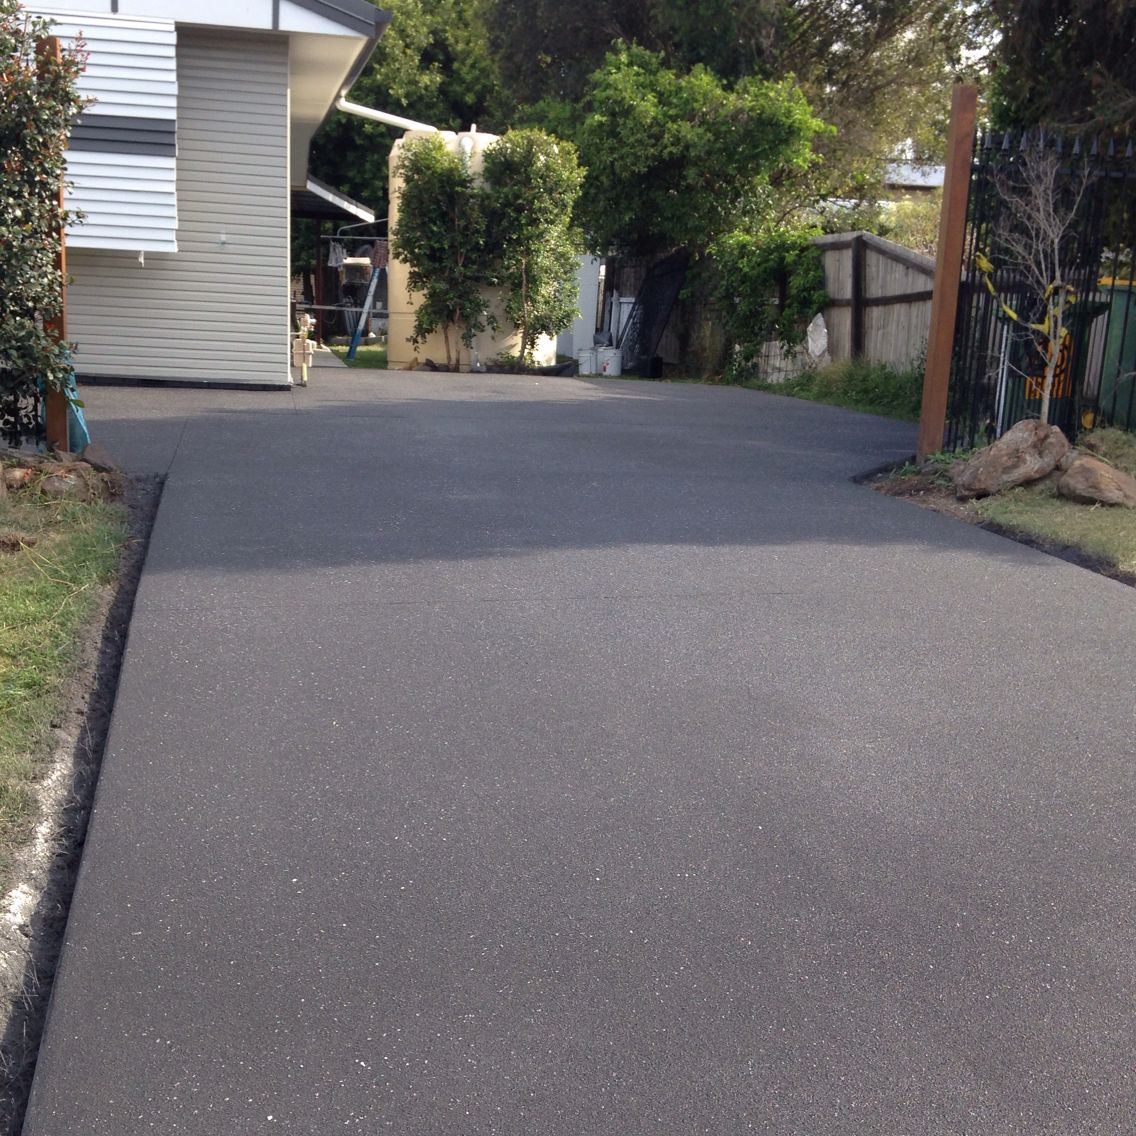 Color Resurfaced Concrete Driveway Graphite With A White Fleck Driveway Design Outdoor Paving Concrete Driveways